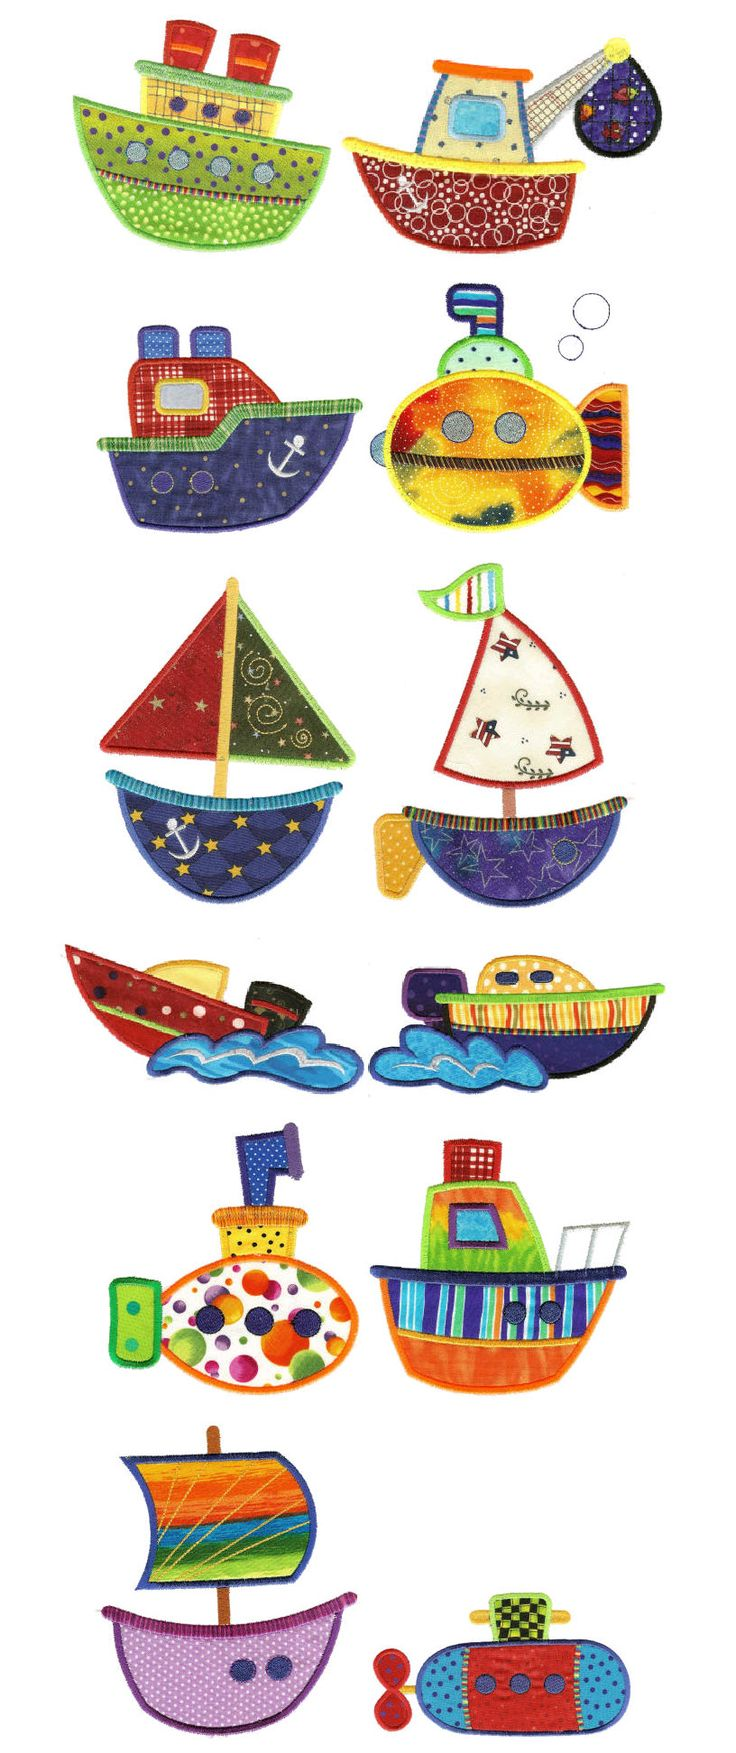 DBJJ Row Row Your Boat Applique